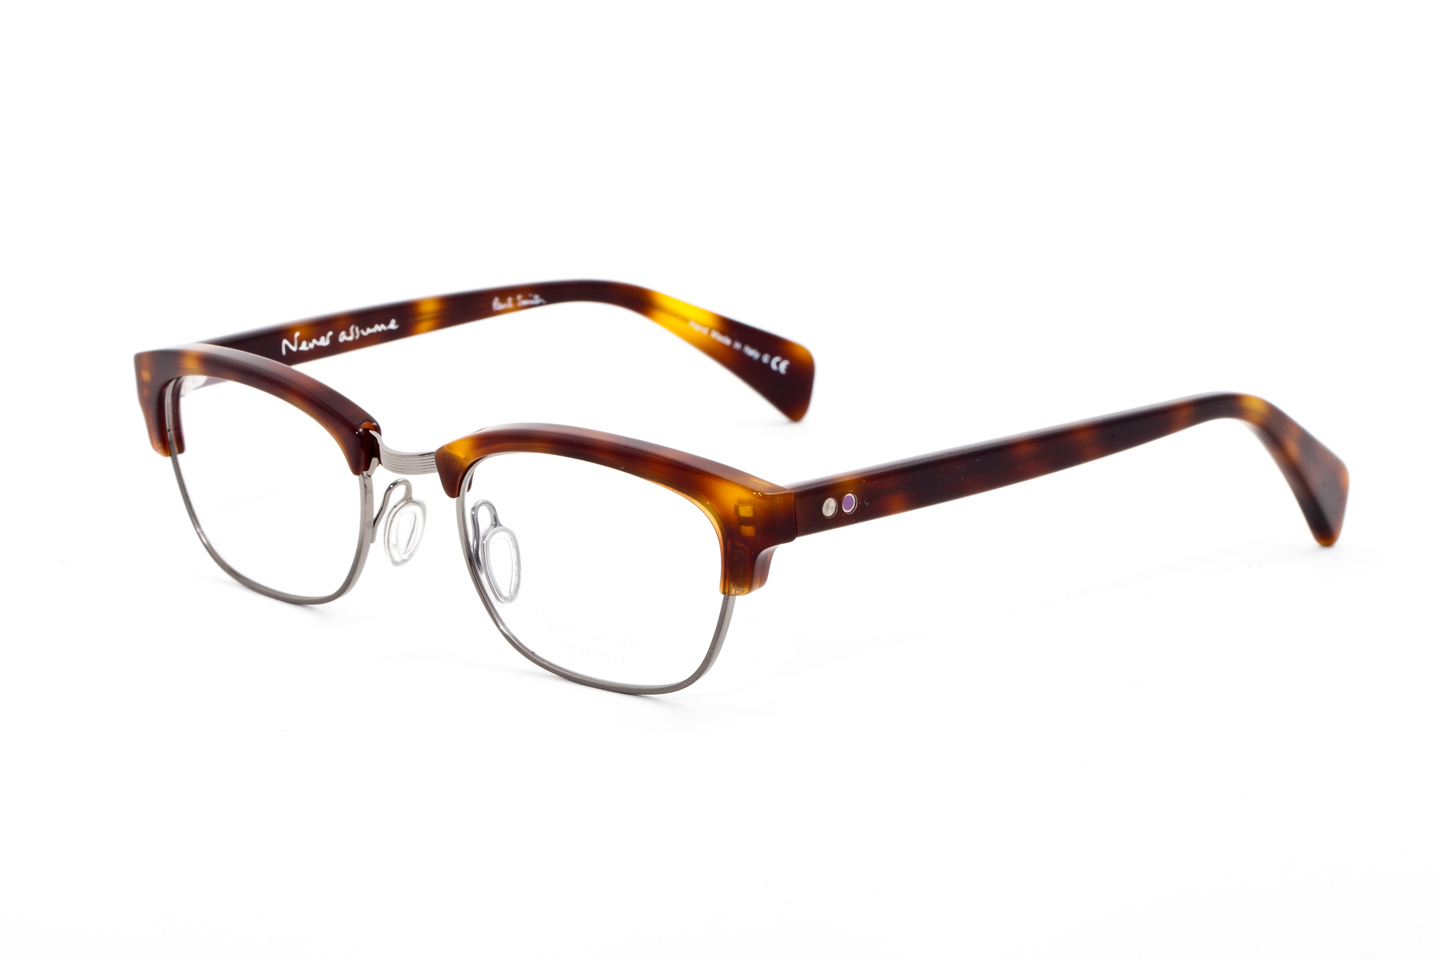 Paul Smith Glasses | Barnard Levit